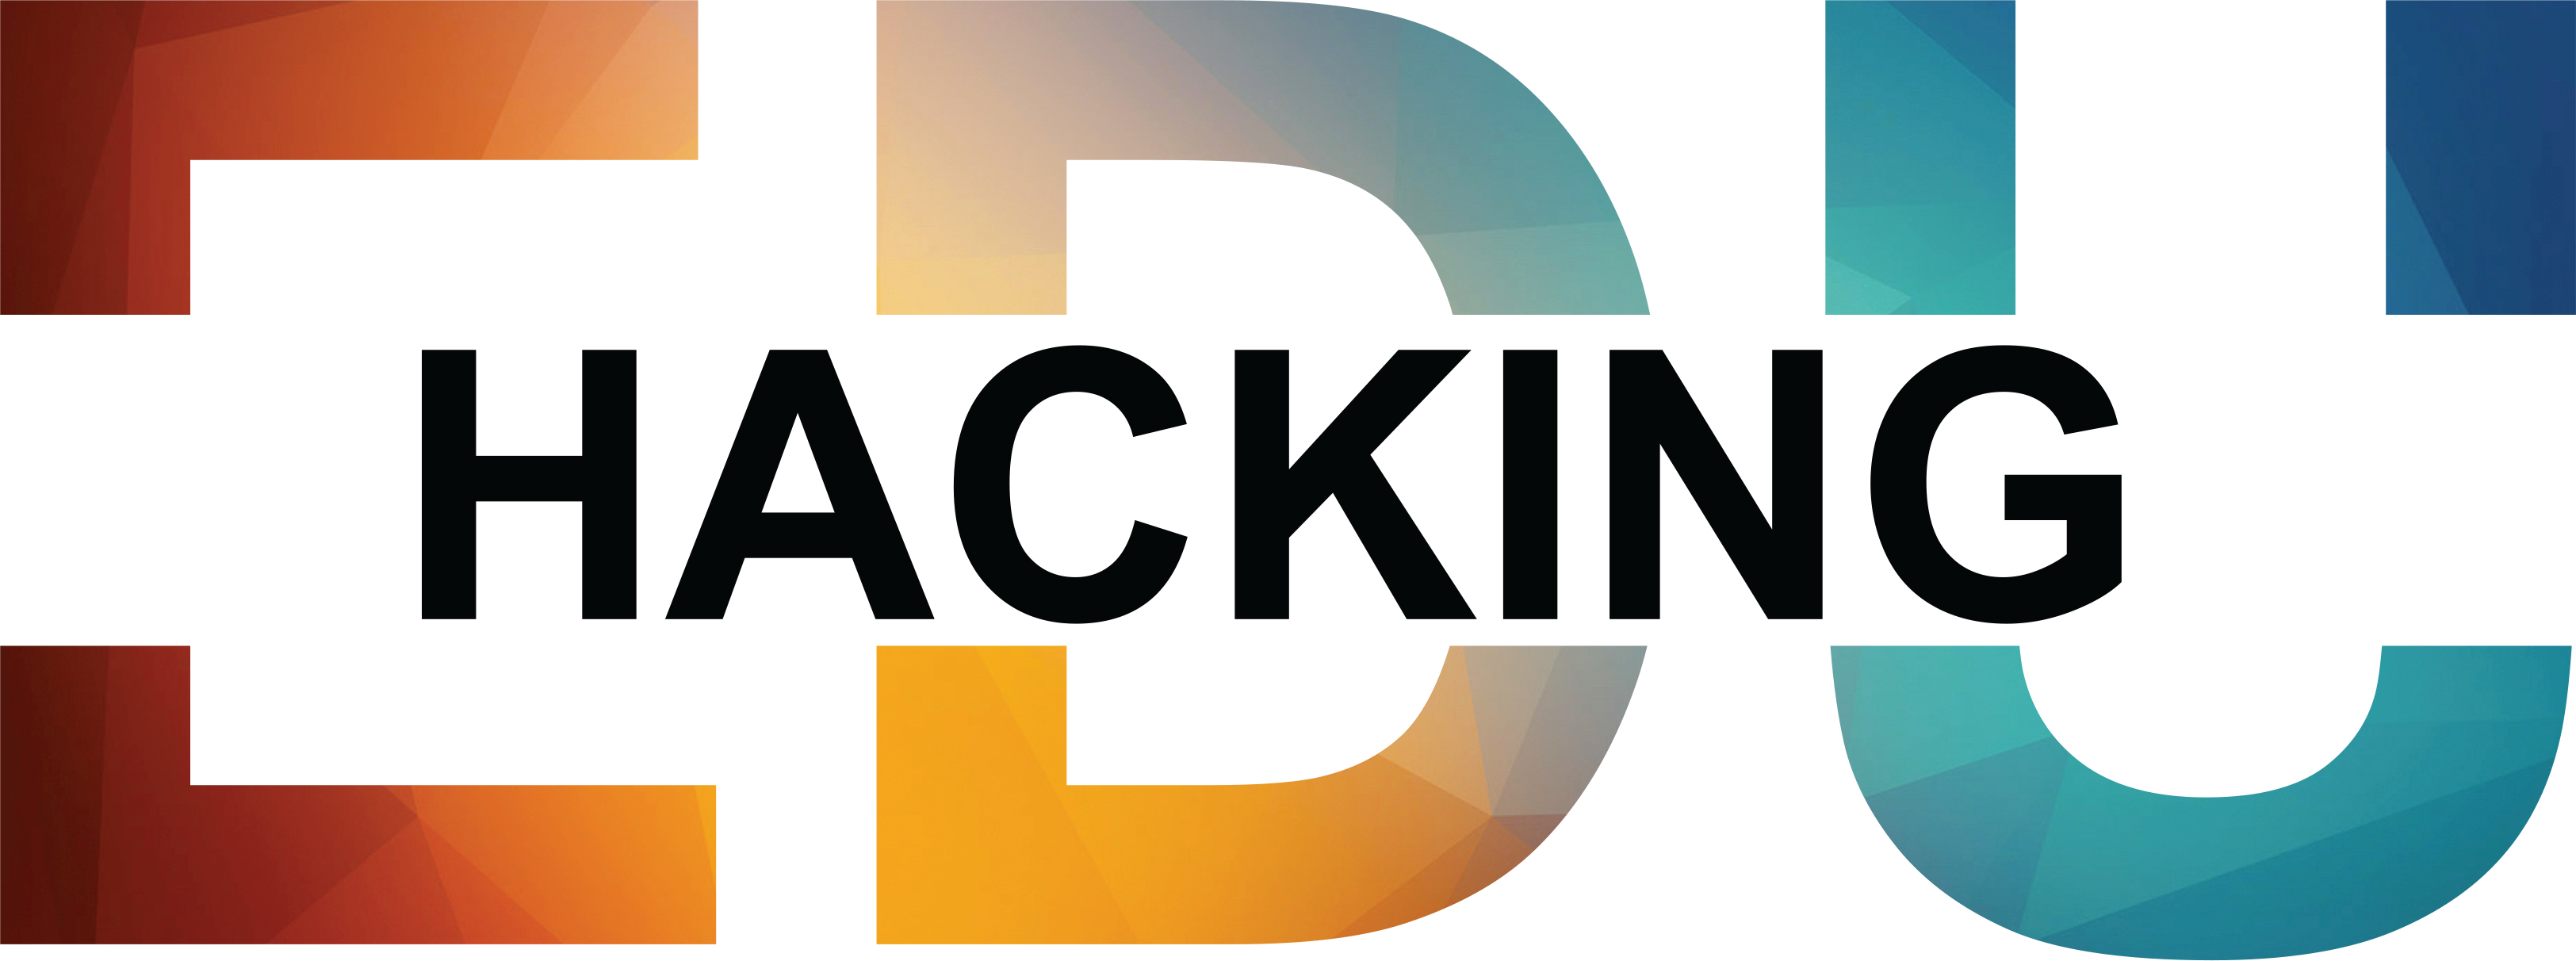 Change color of png file. Hackingedu logo wikimedia commons